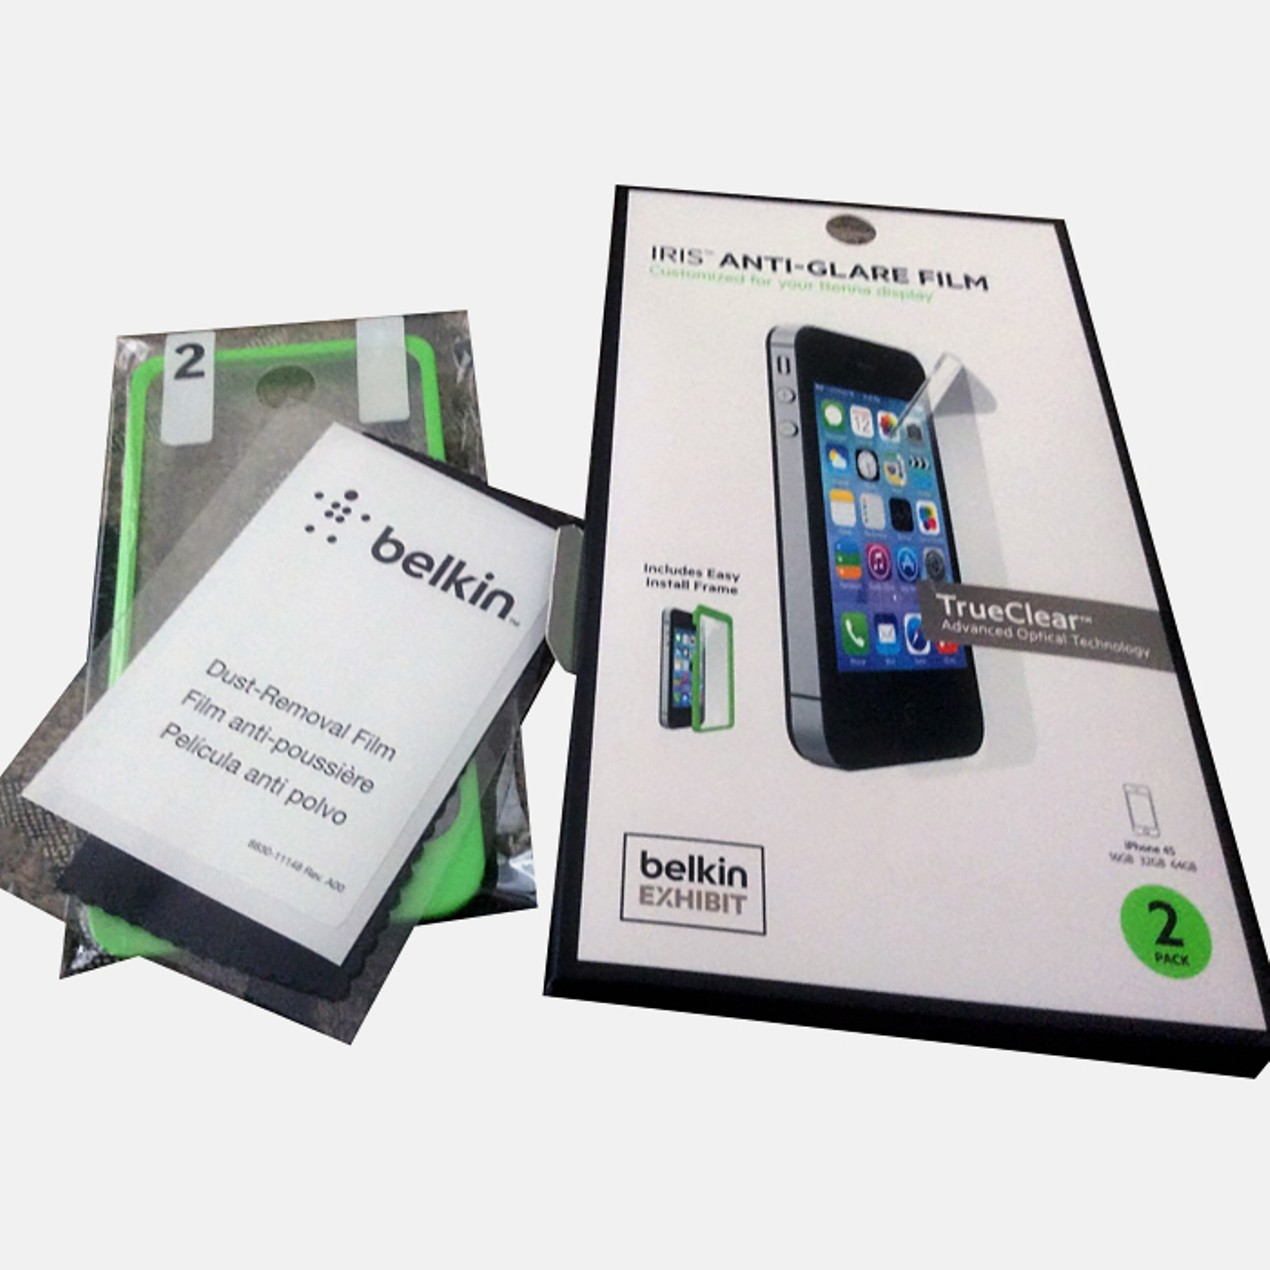 2 Pack Belkin Anti Glare Film Screen Protector Tanga